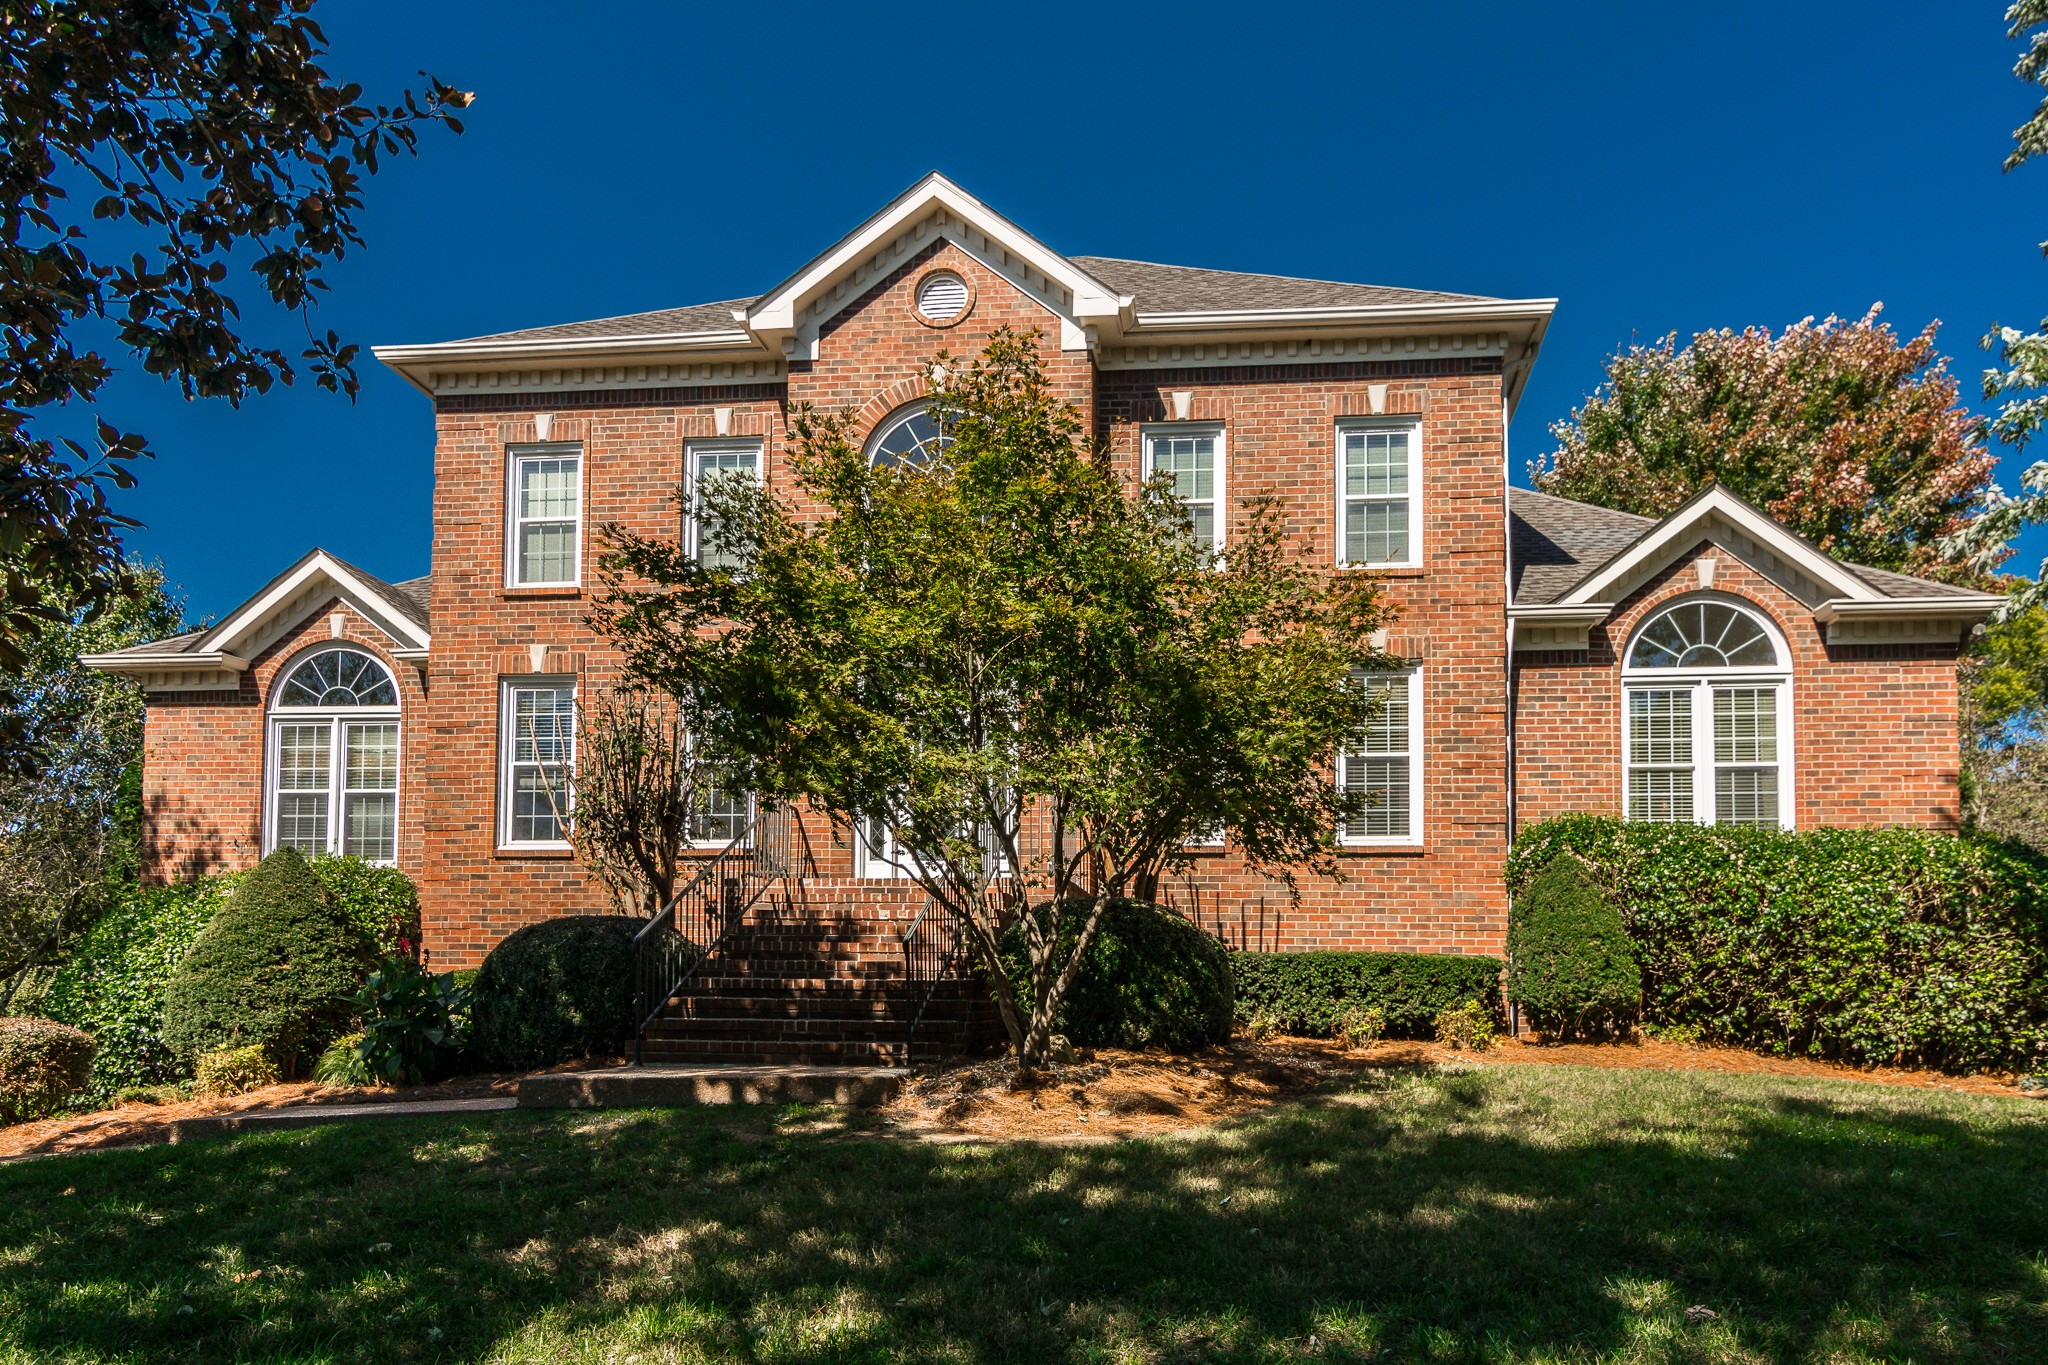 This well kept stately 5 bedroom 4.5 bath rear tandem 3 garage home sits in the center of great schools and optimum accessibility in and out of this sought after community of Central Brentwood's Best. Professionally measured. Checks all the boxes  with all the space and room to bring your creativity and added touches. Full walk out basement. Enlarged patio deck allows for maximum enjoyment of the beautiful trees that envelope the property.  Click link below to take the Video Tour.